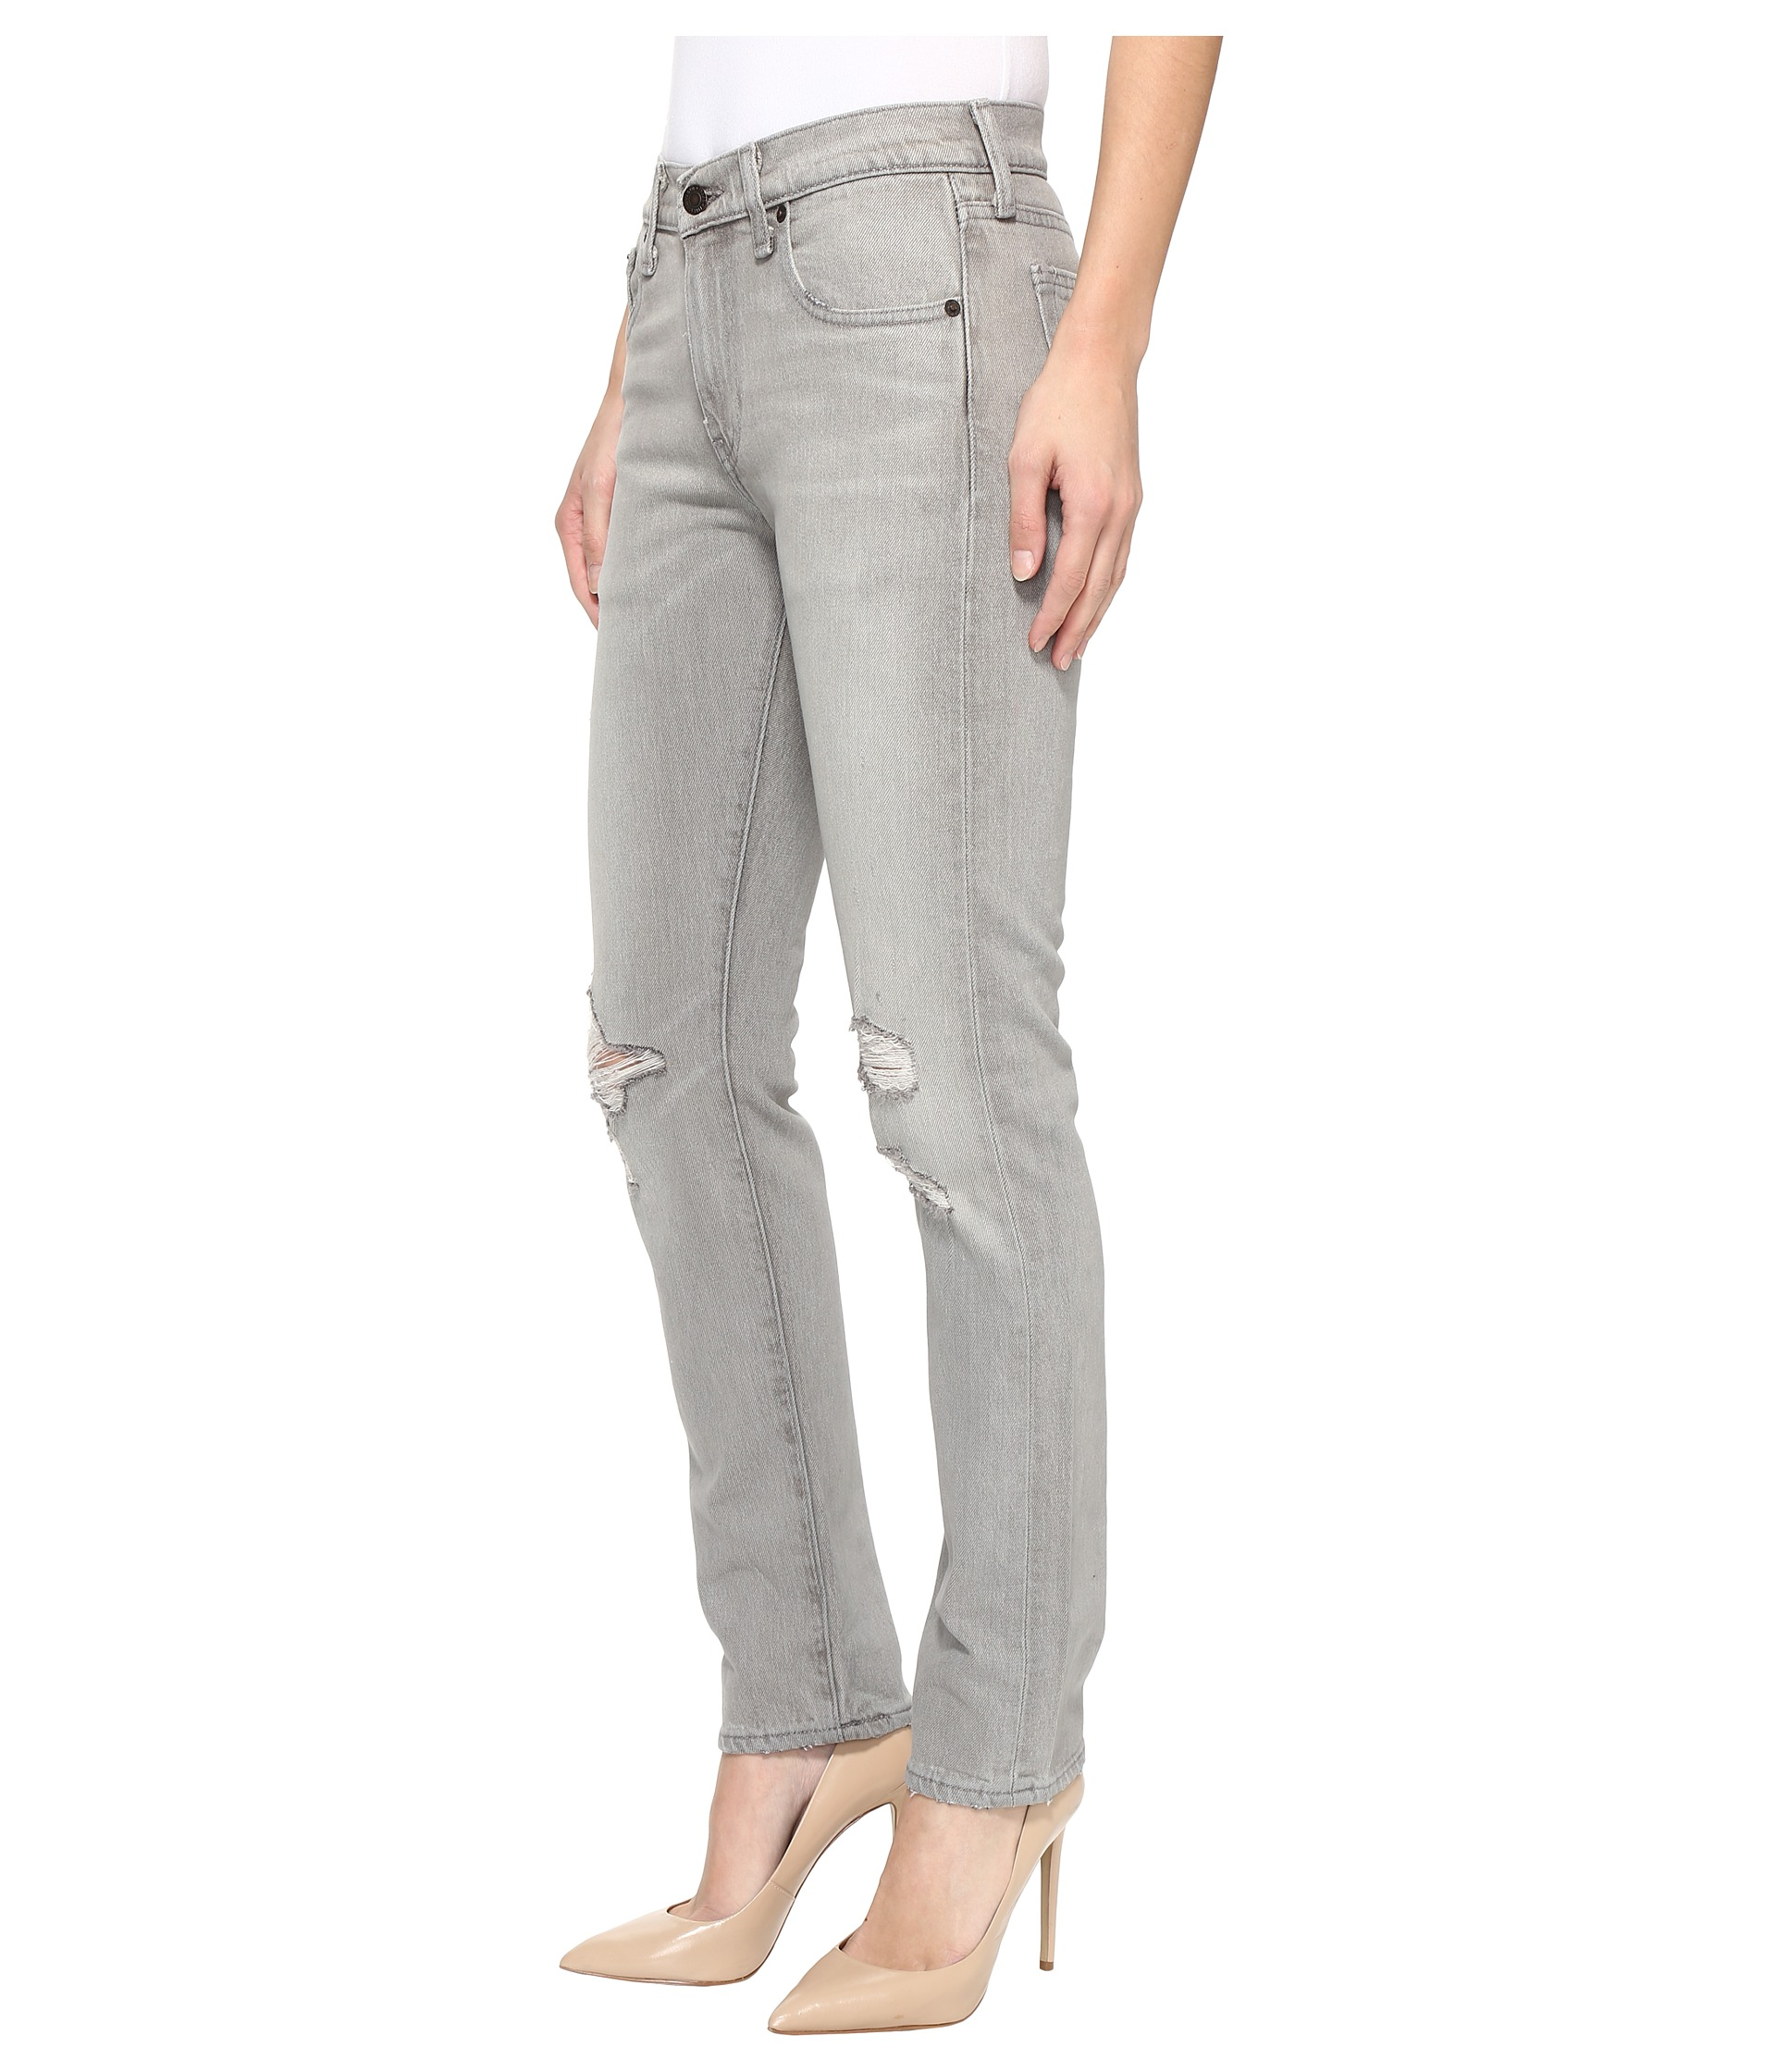 Zappos ($$) You can use their free shipping and free return policy to easily try out jeans from their 34